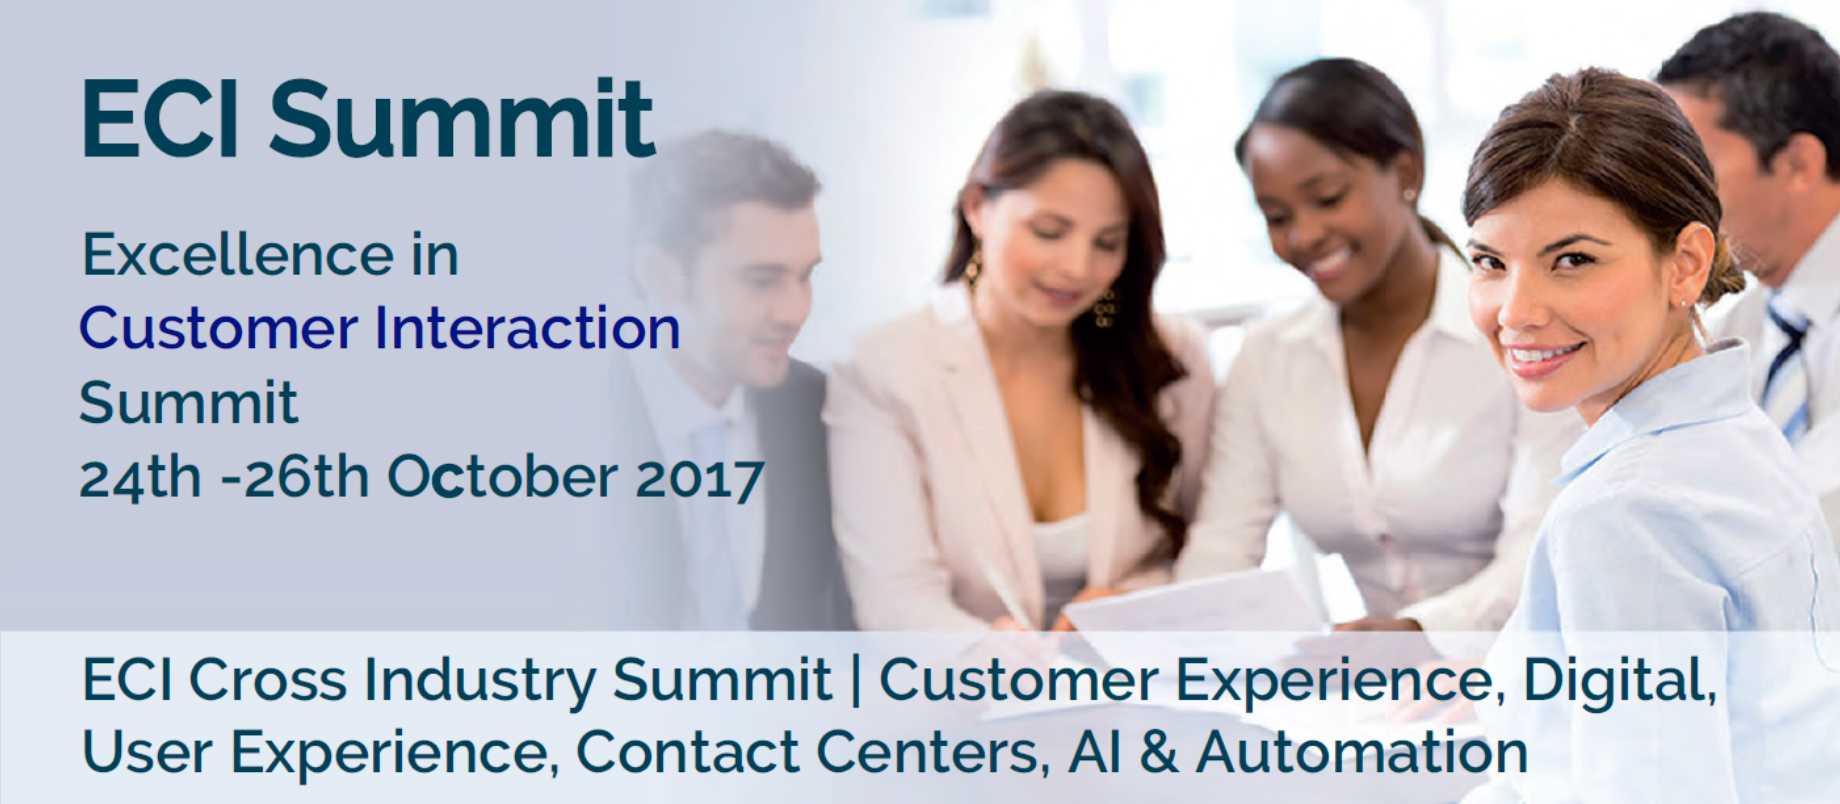 Excellence in Customer Interaction Summit